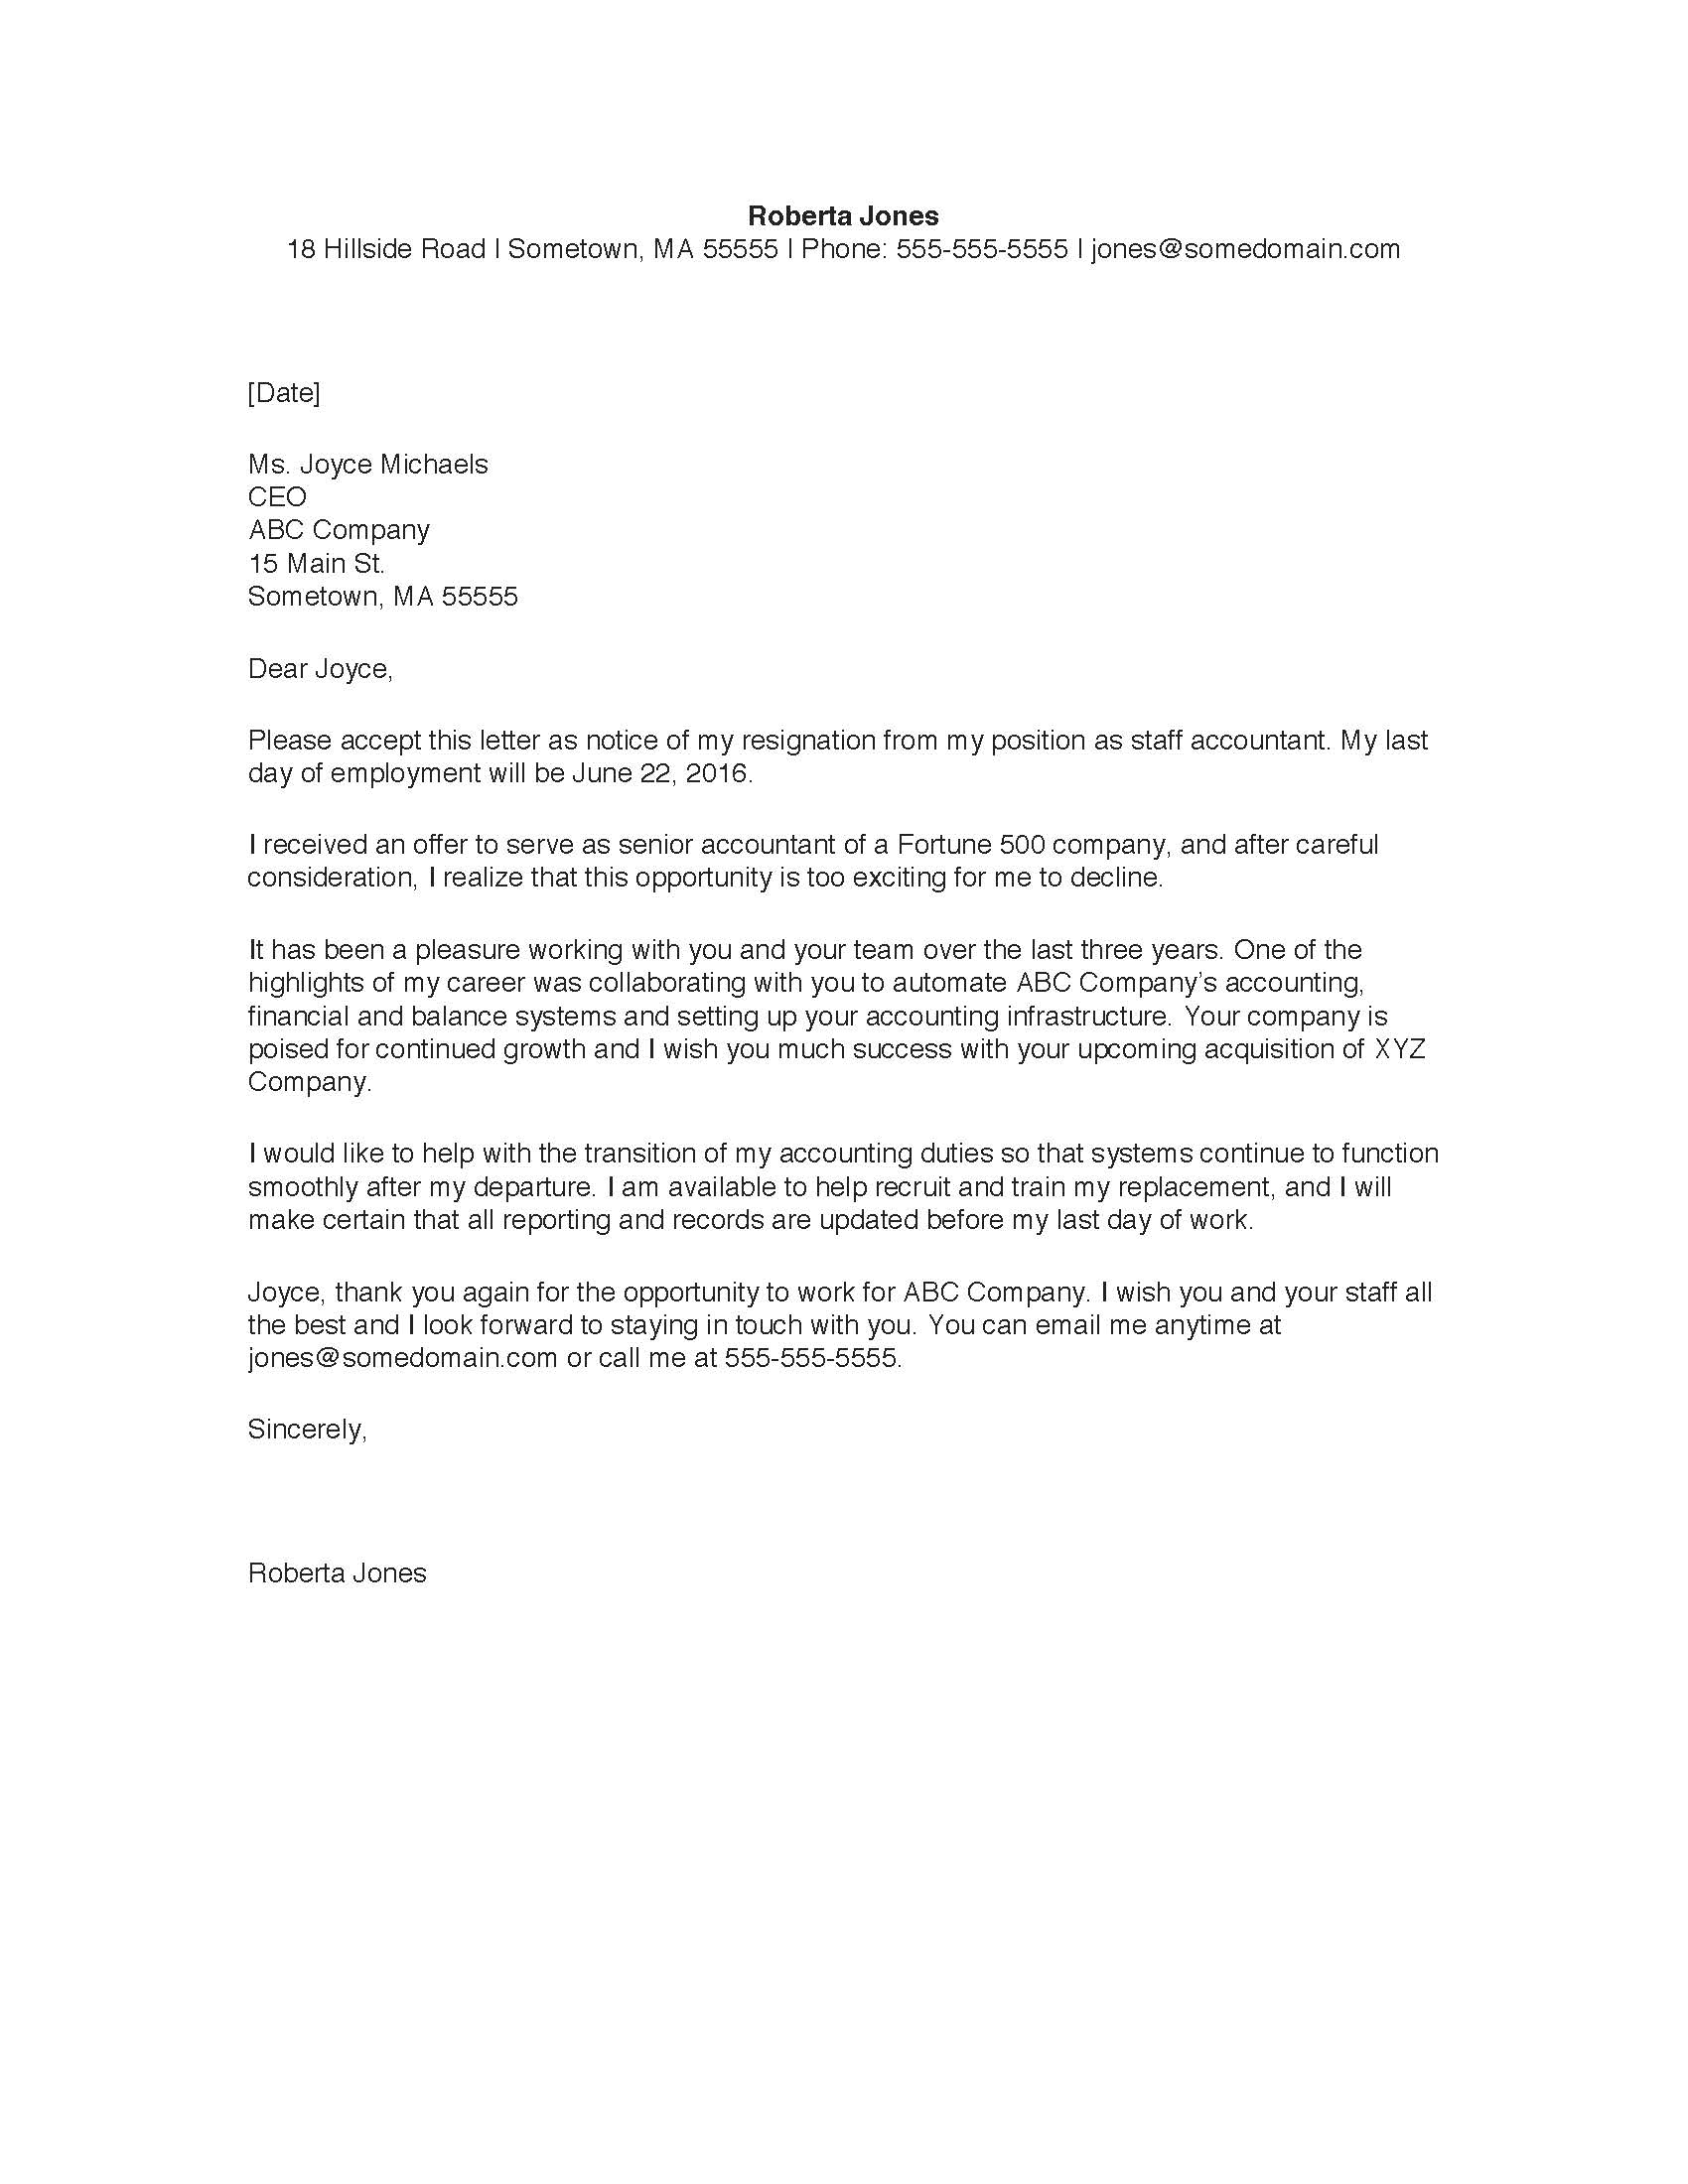 Sample Resignation Letter  How To Write A Termination Letter To An Employer